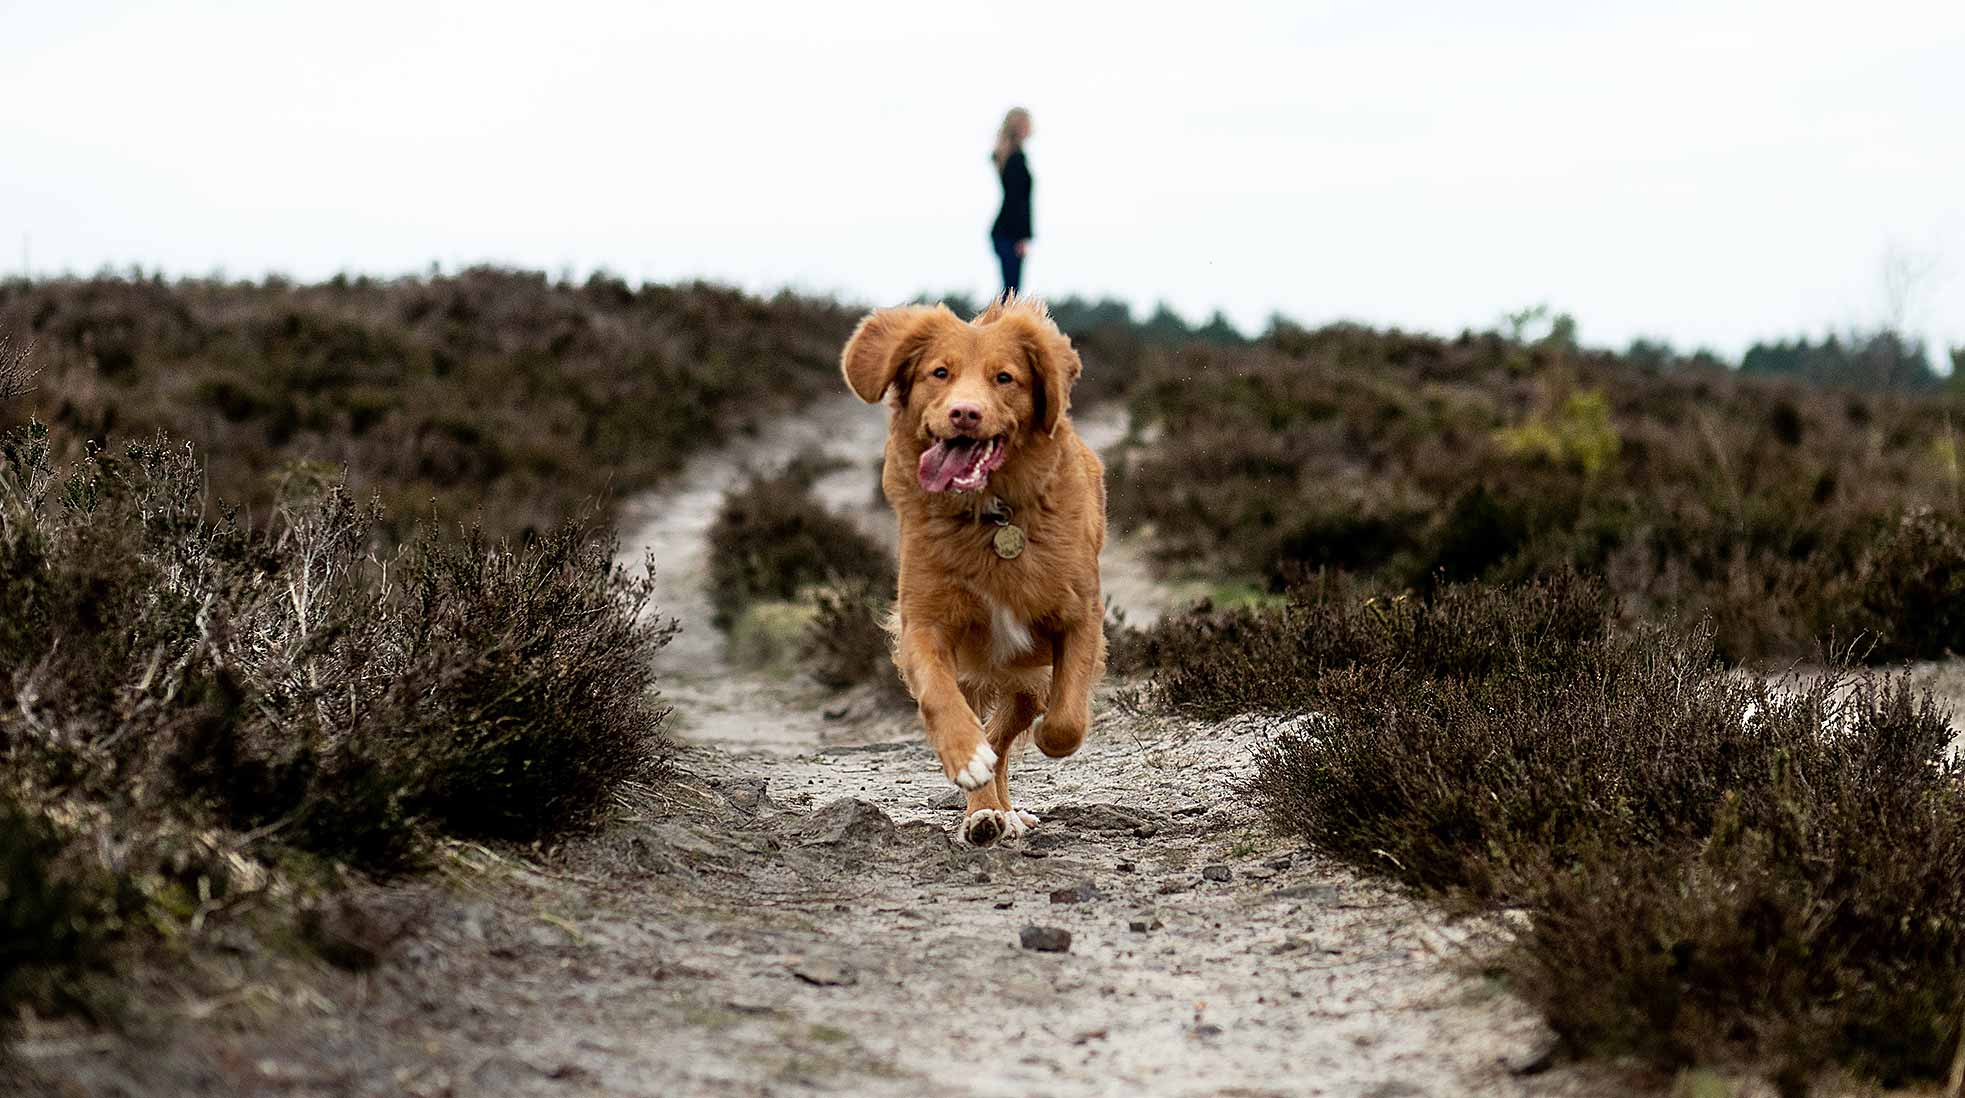 Take your dog for a more exciting walk next time. Photo: Jamie Street / Unsplash